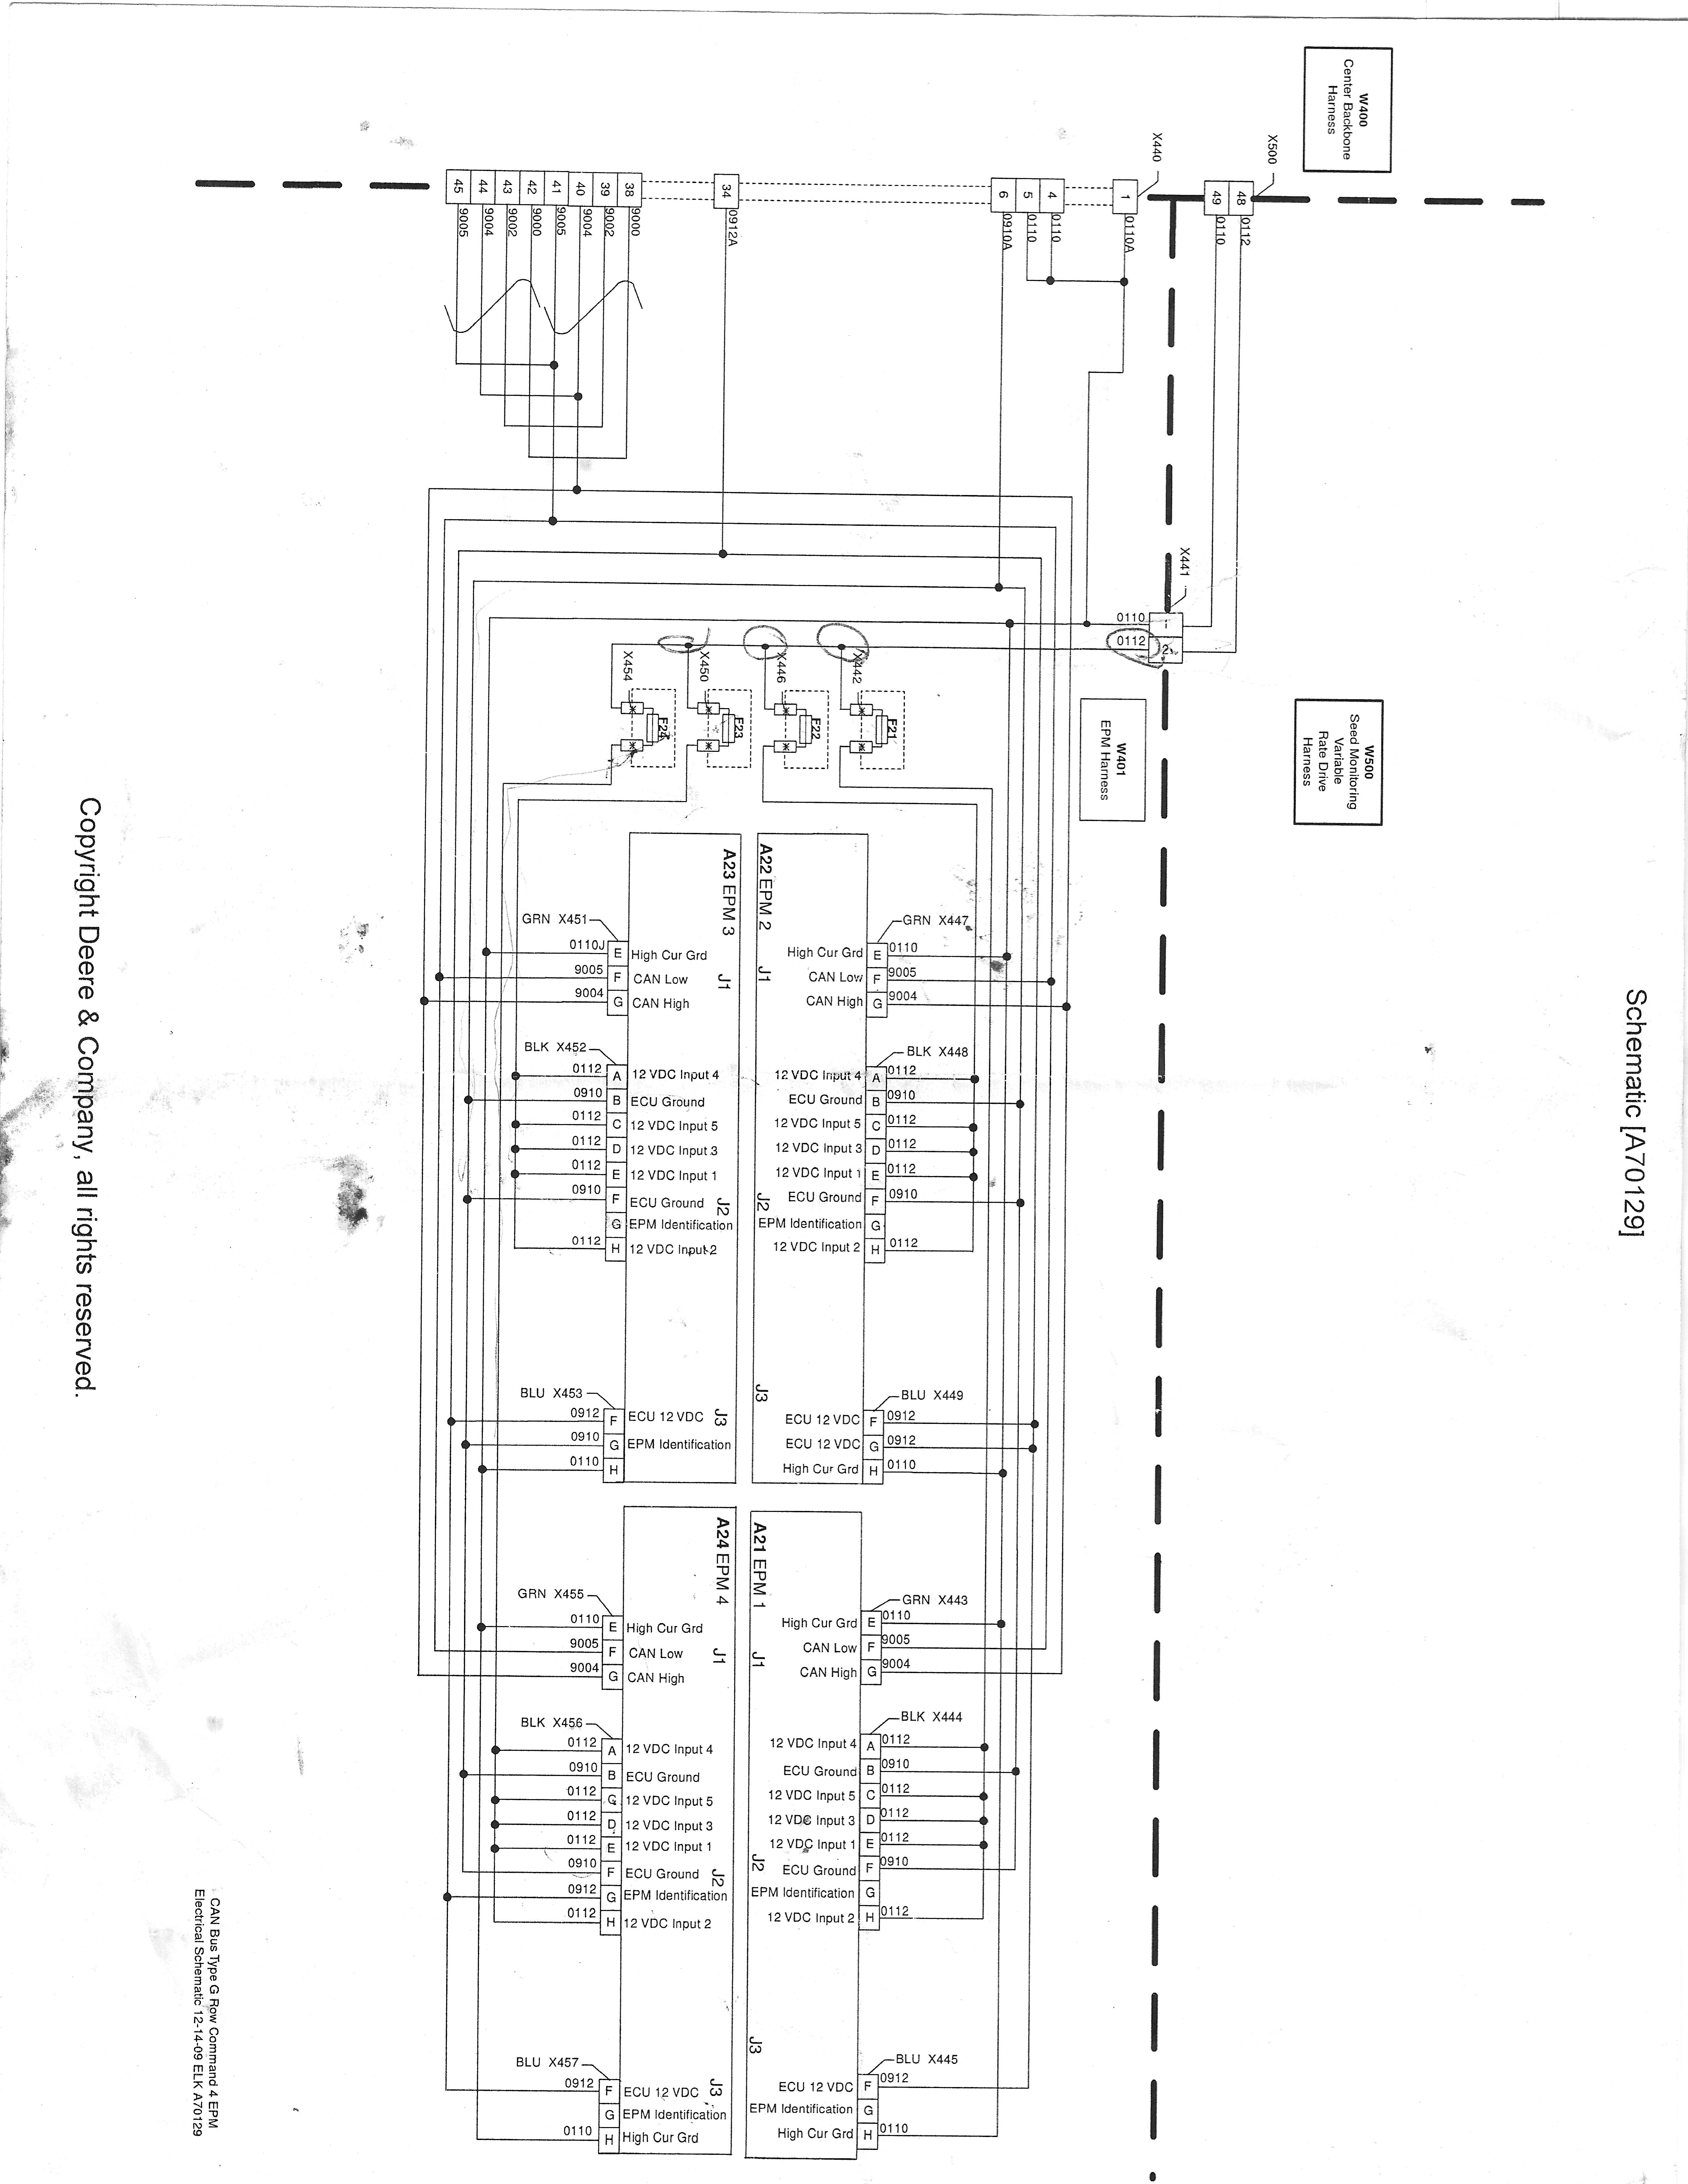 Viewing A Thread Does Anyone Understand Wiring Diagrams That Case Planter Diagram The Can Be Downloaded Here Might Best To Right Click And Save Link As If Youre Interested